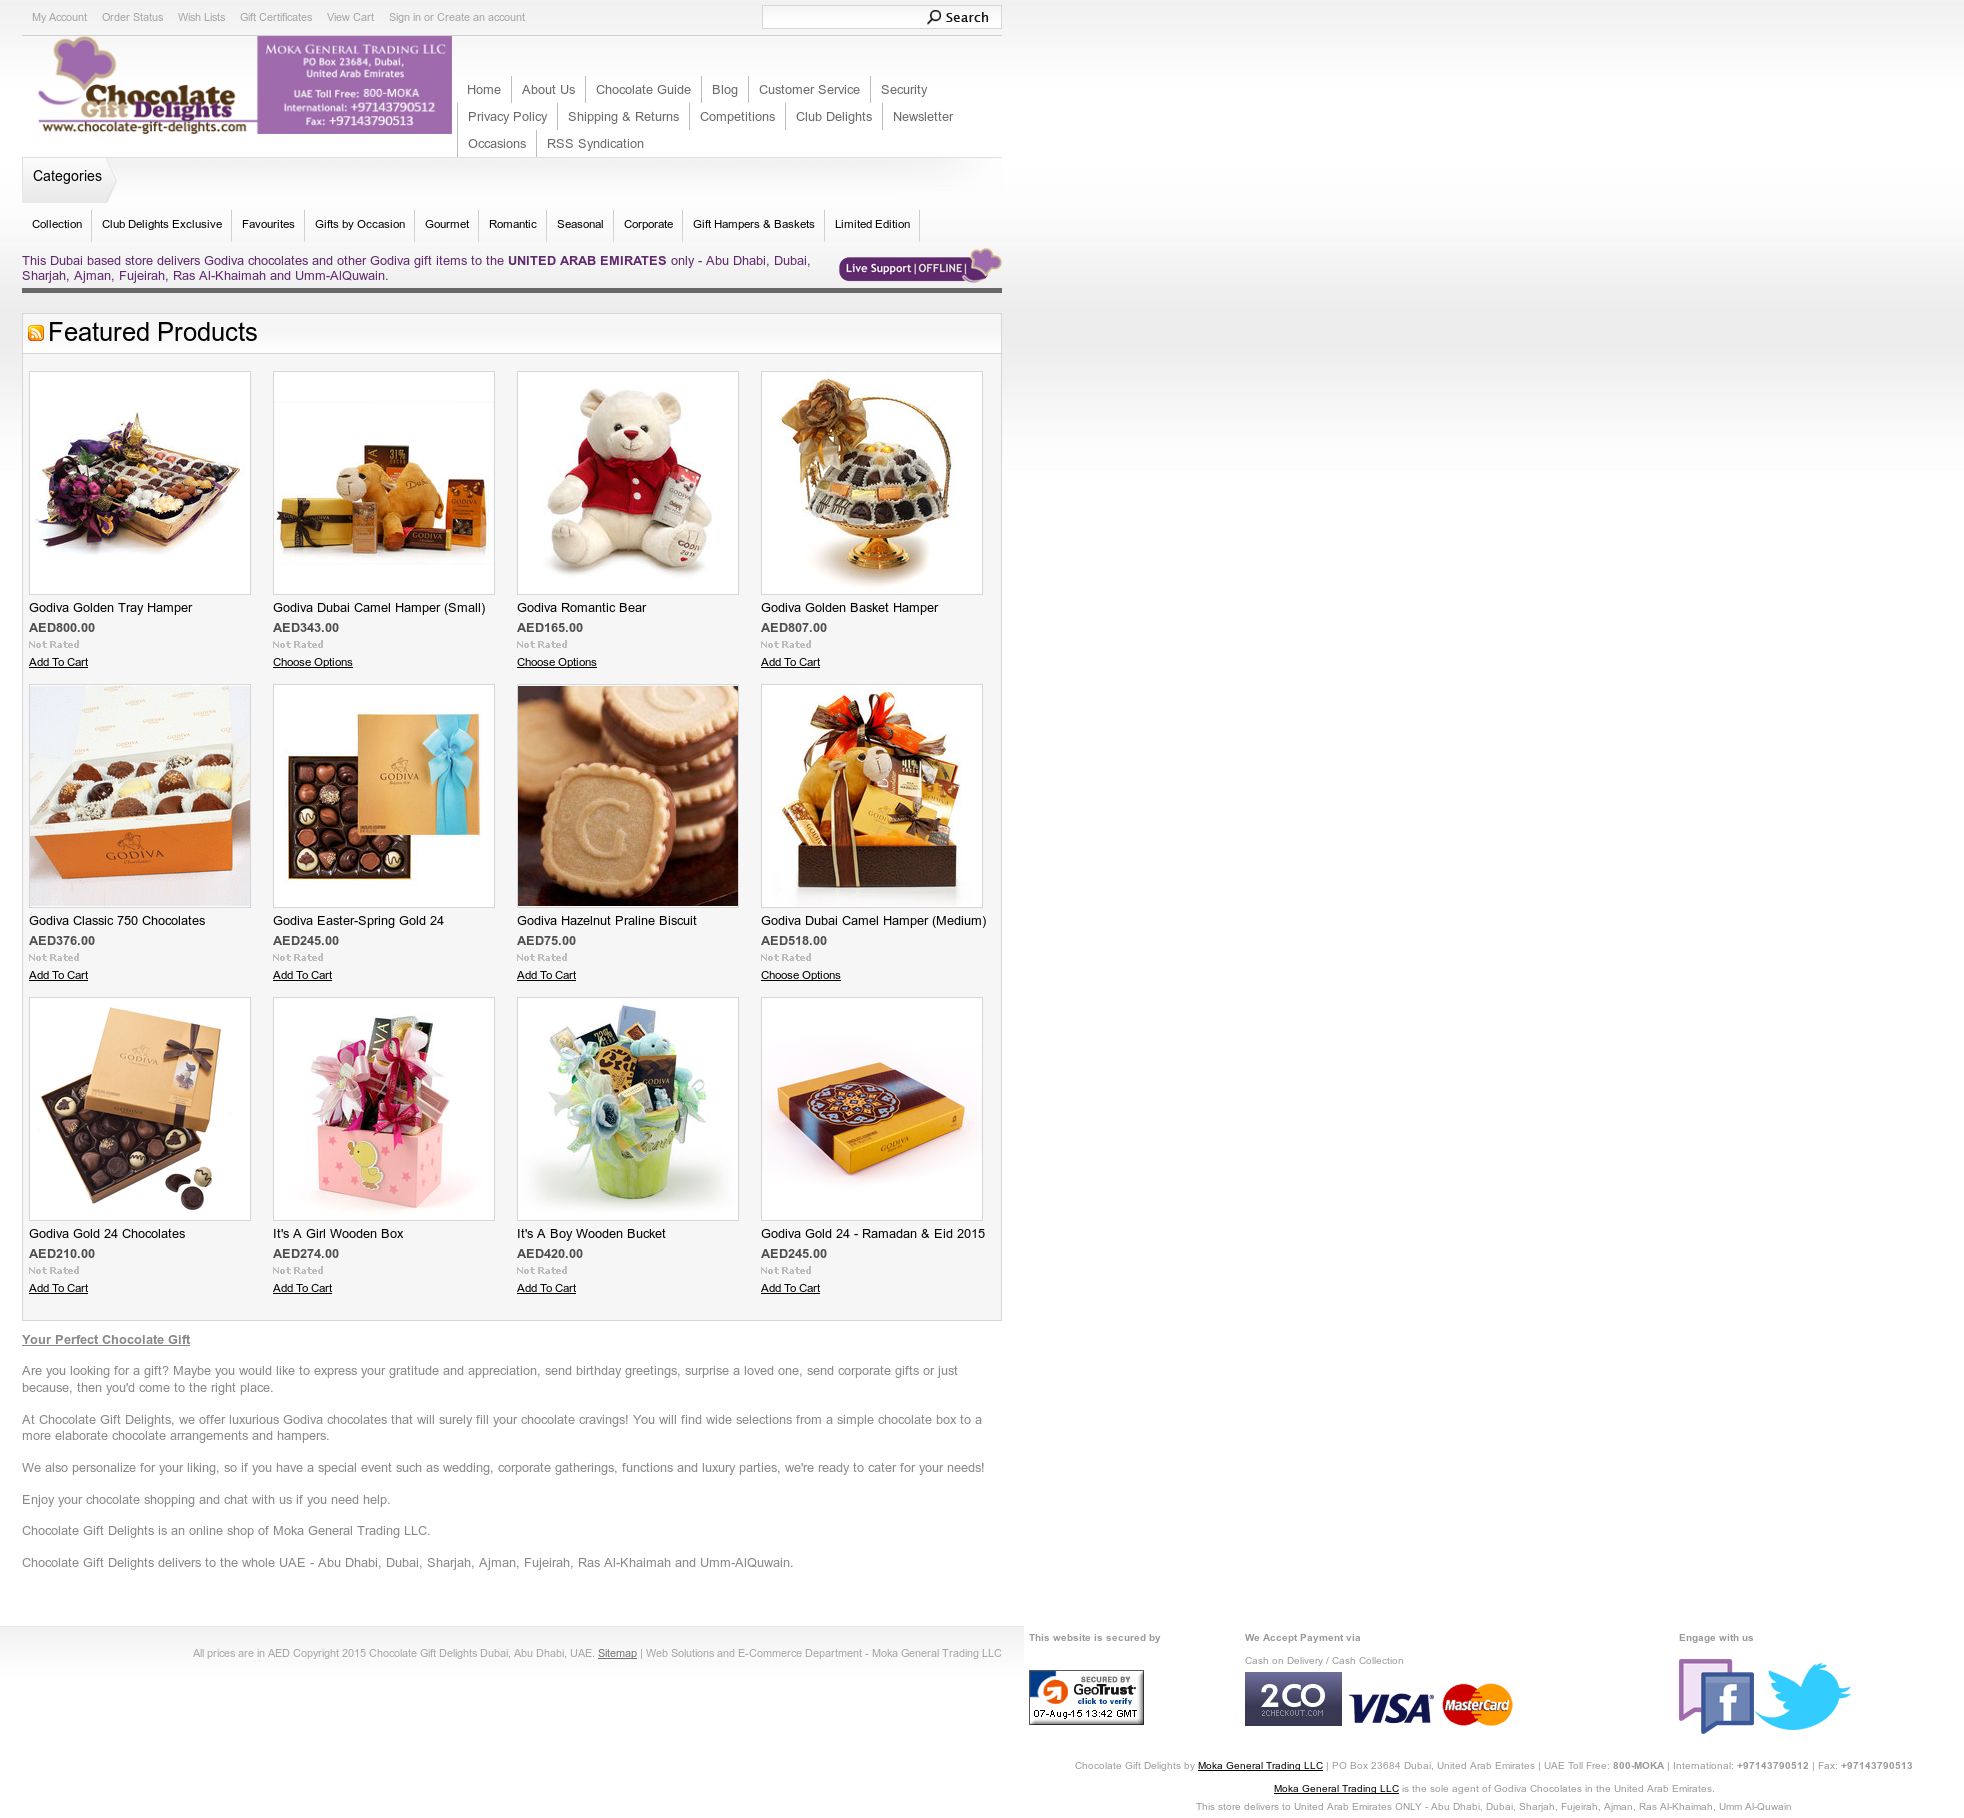 Chocolate Gift Delights Uae Competitors, Revenue and